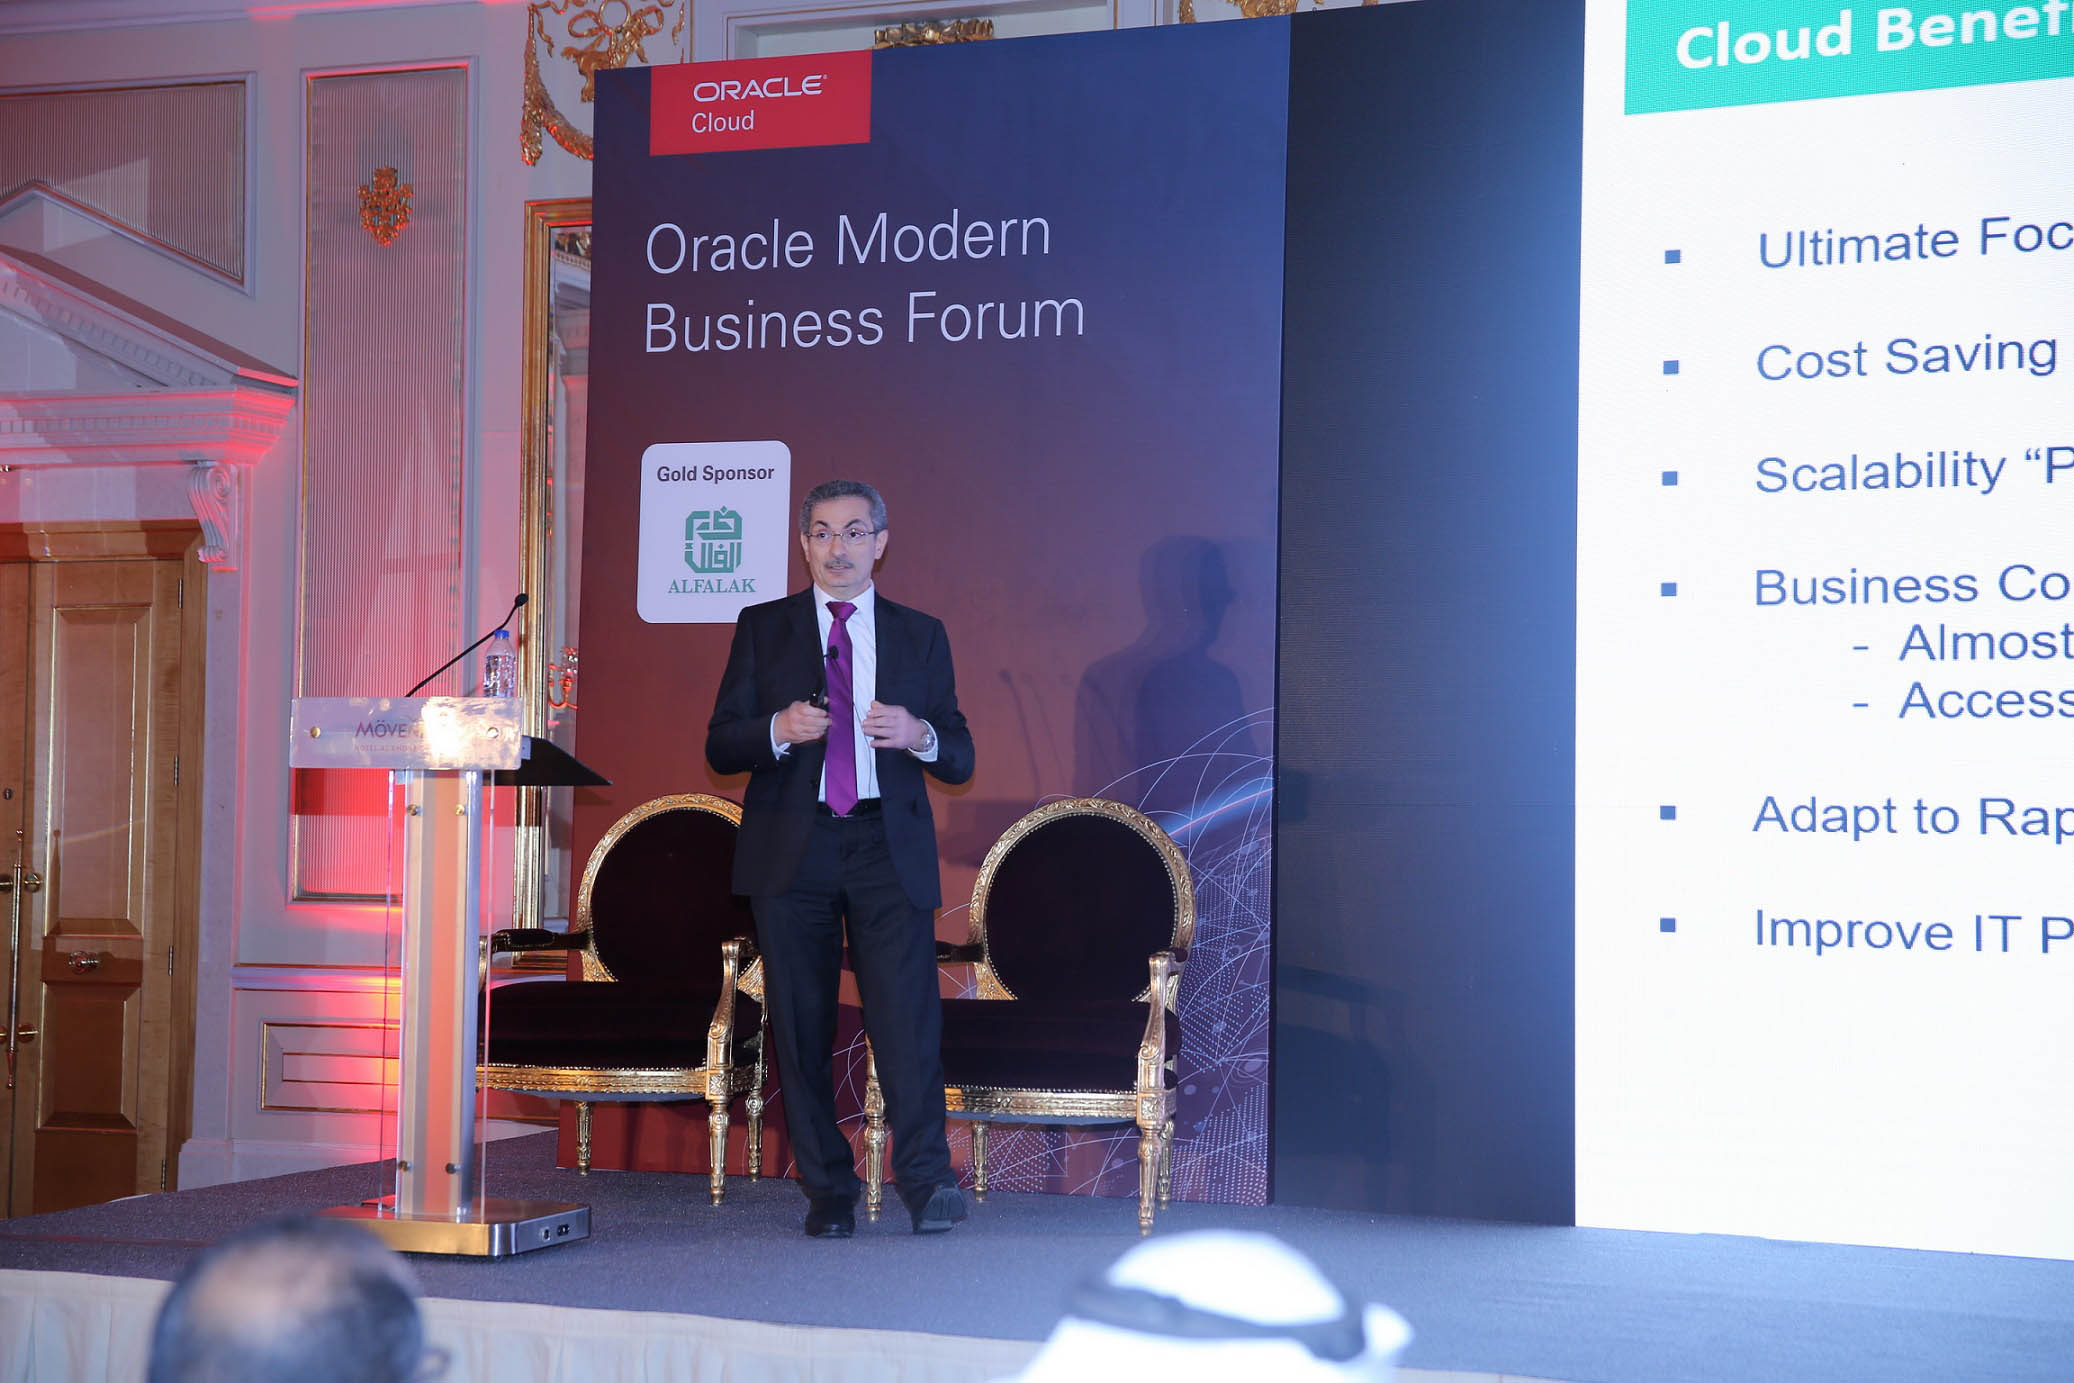 Al Falak Takes Part in Oracle Modern Business Forum as Gold Sponsor